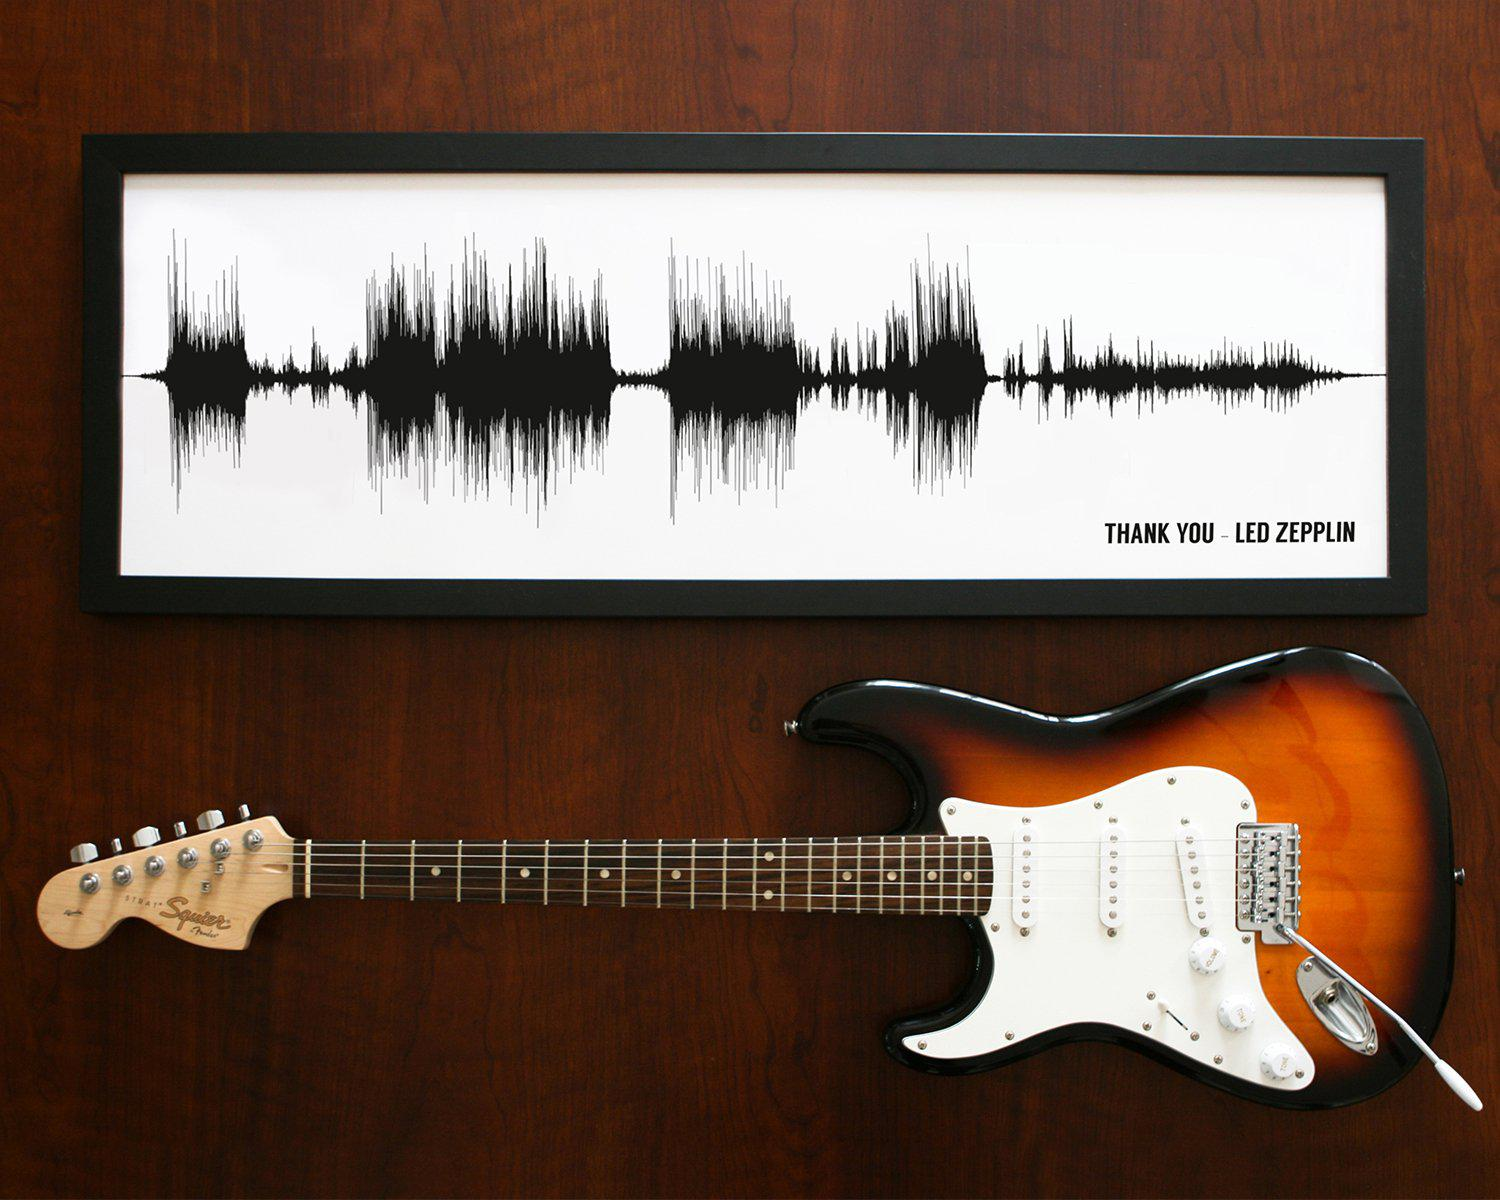 Song Sound Wave Art Framed Musician Gifts